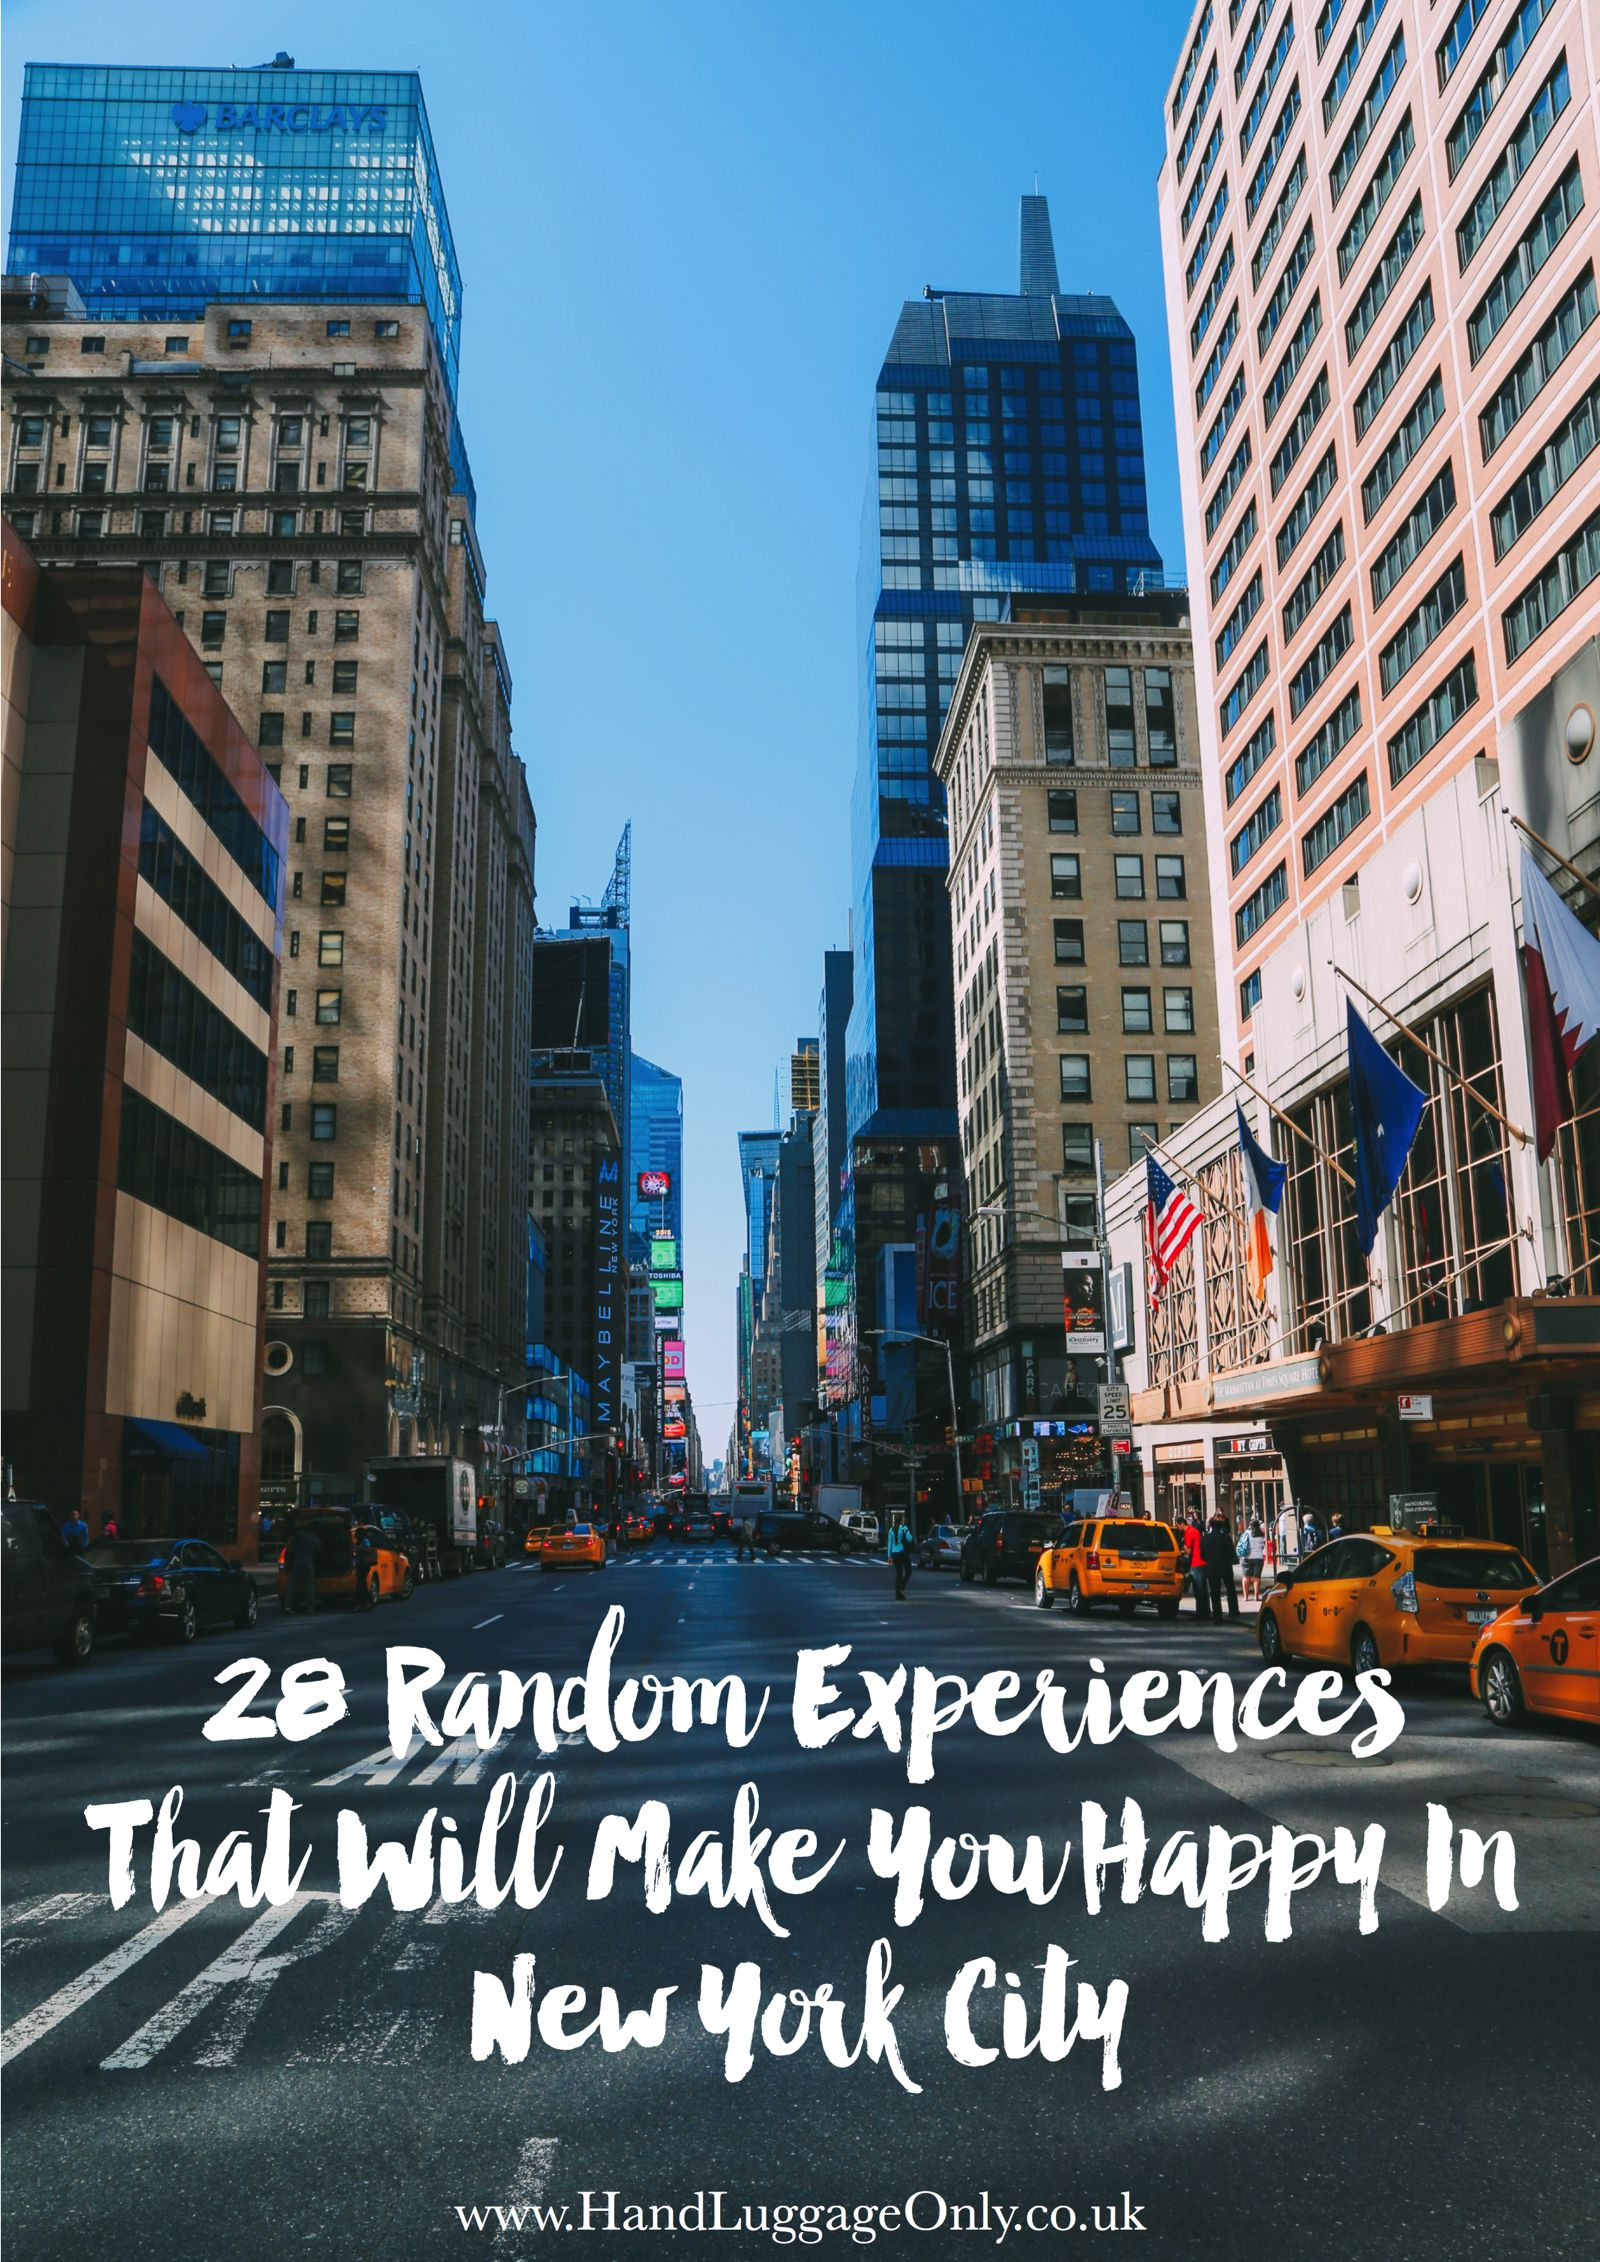 28 Random Experiences That Will Make You Happy In New York City!